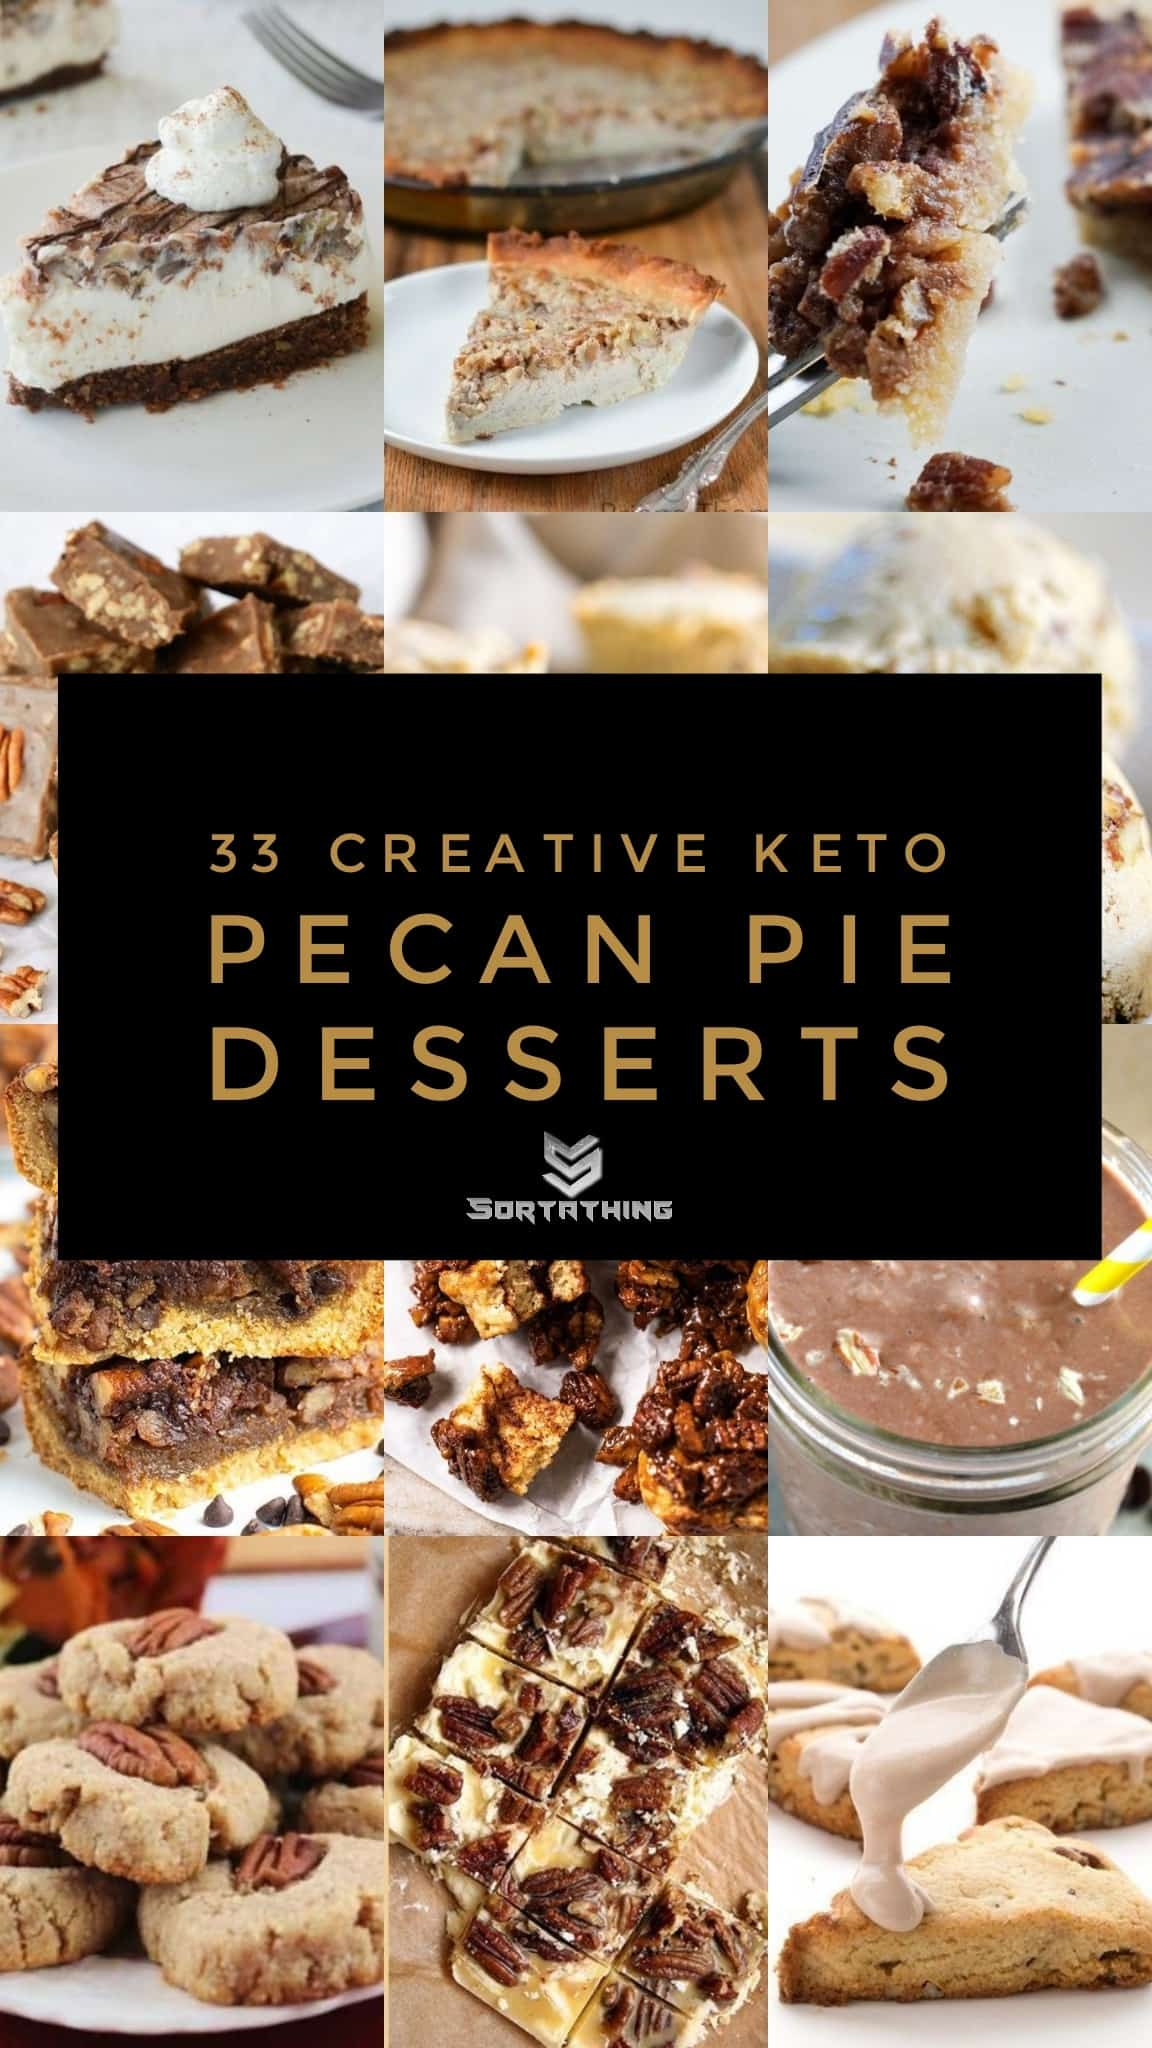 33 Creative Keto Pecan Pie Dessert Recipes